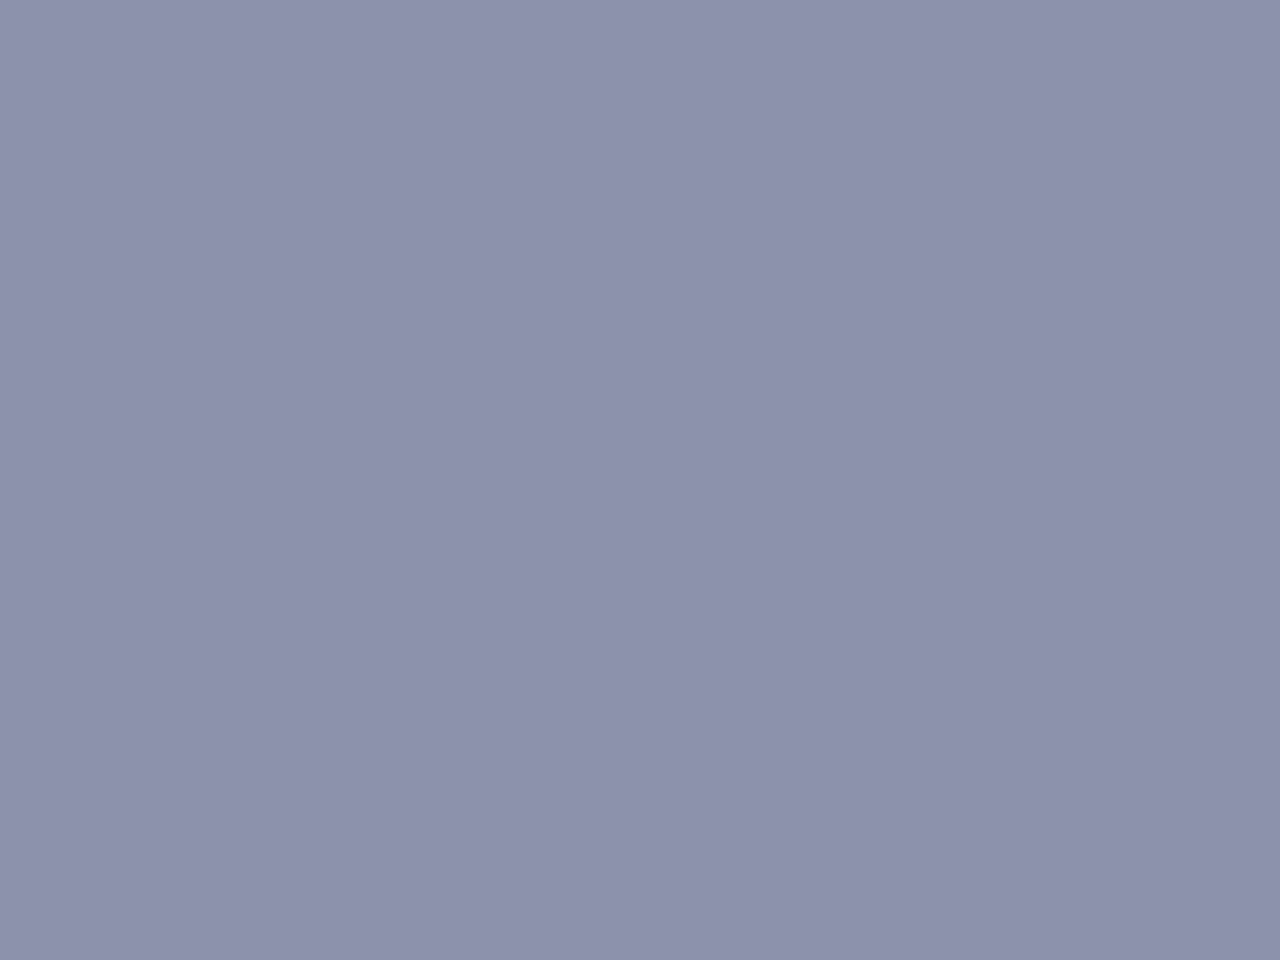 1280x960 Cool Grey Solid Color Background